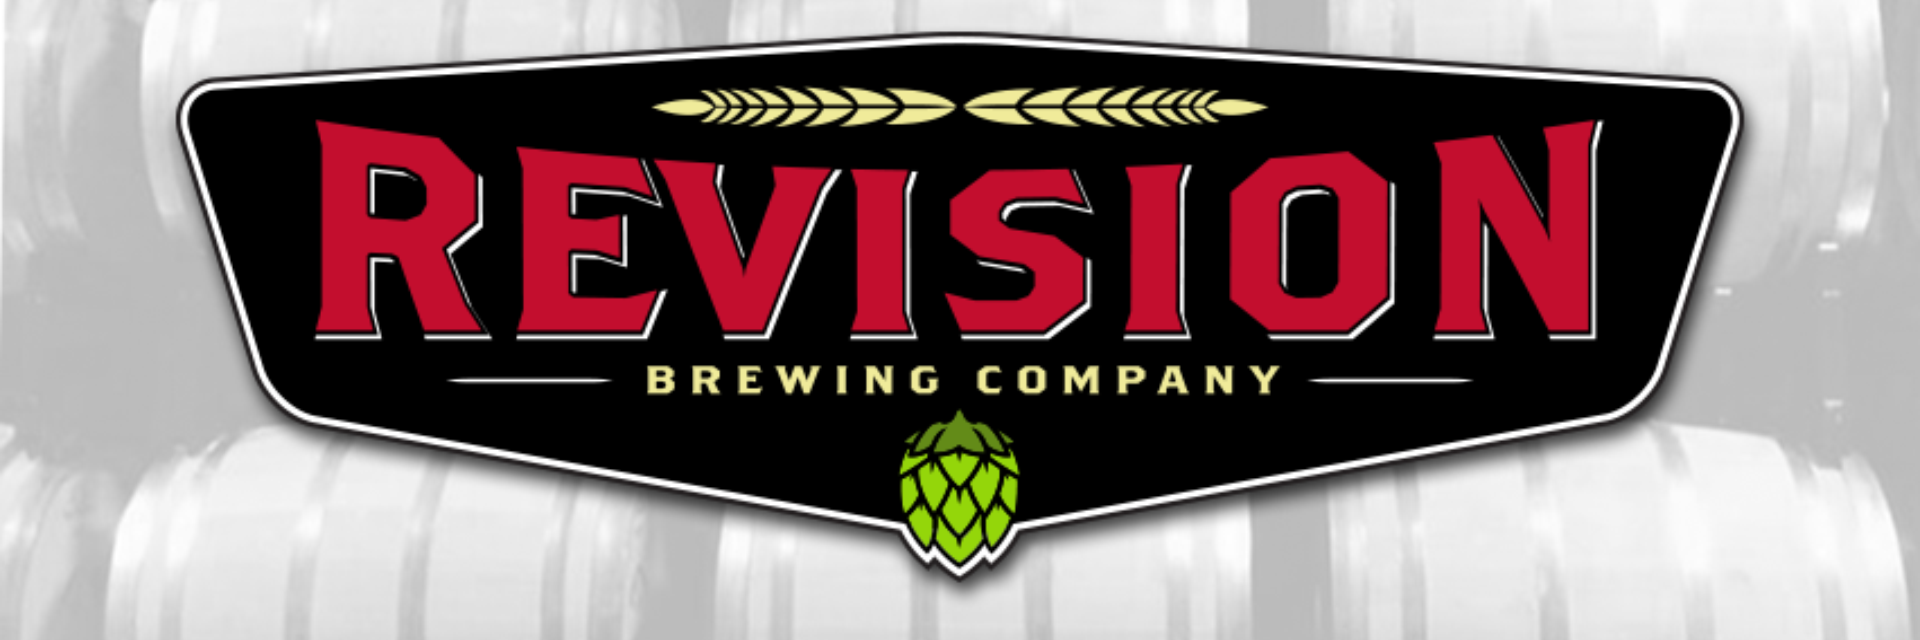 cover image of revision brewing company, featuring the main logo overlaid on a photo a beer barrels